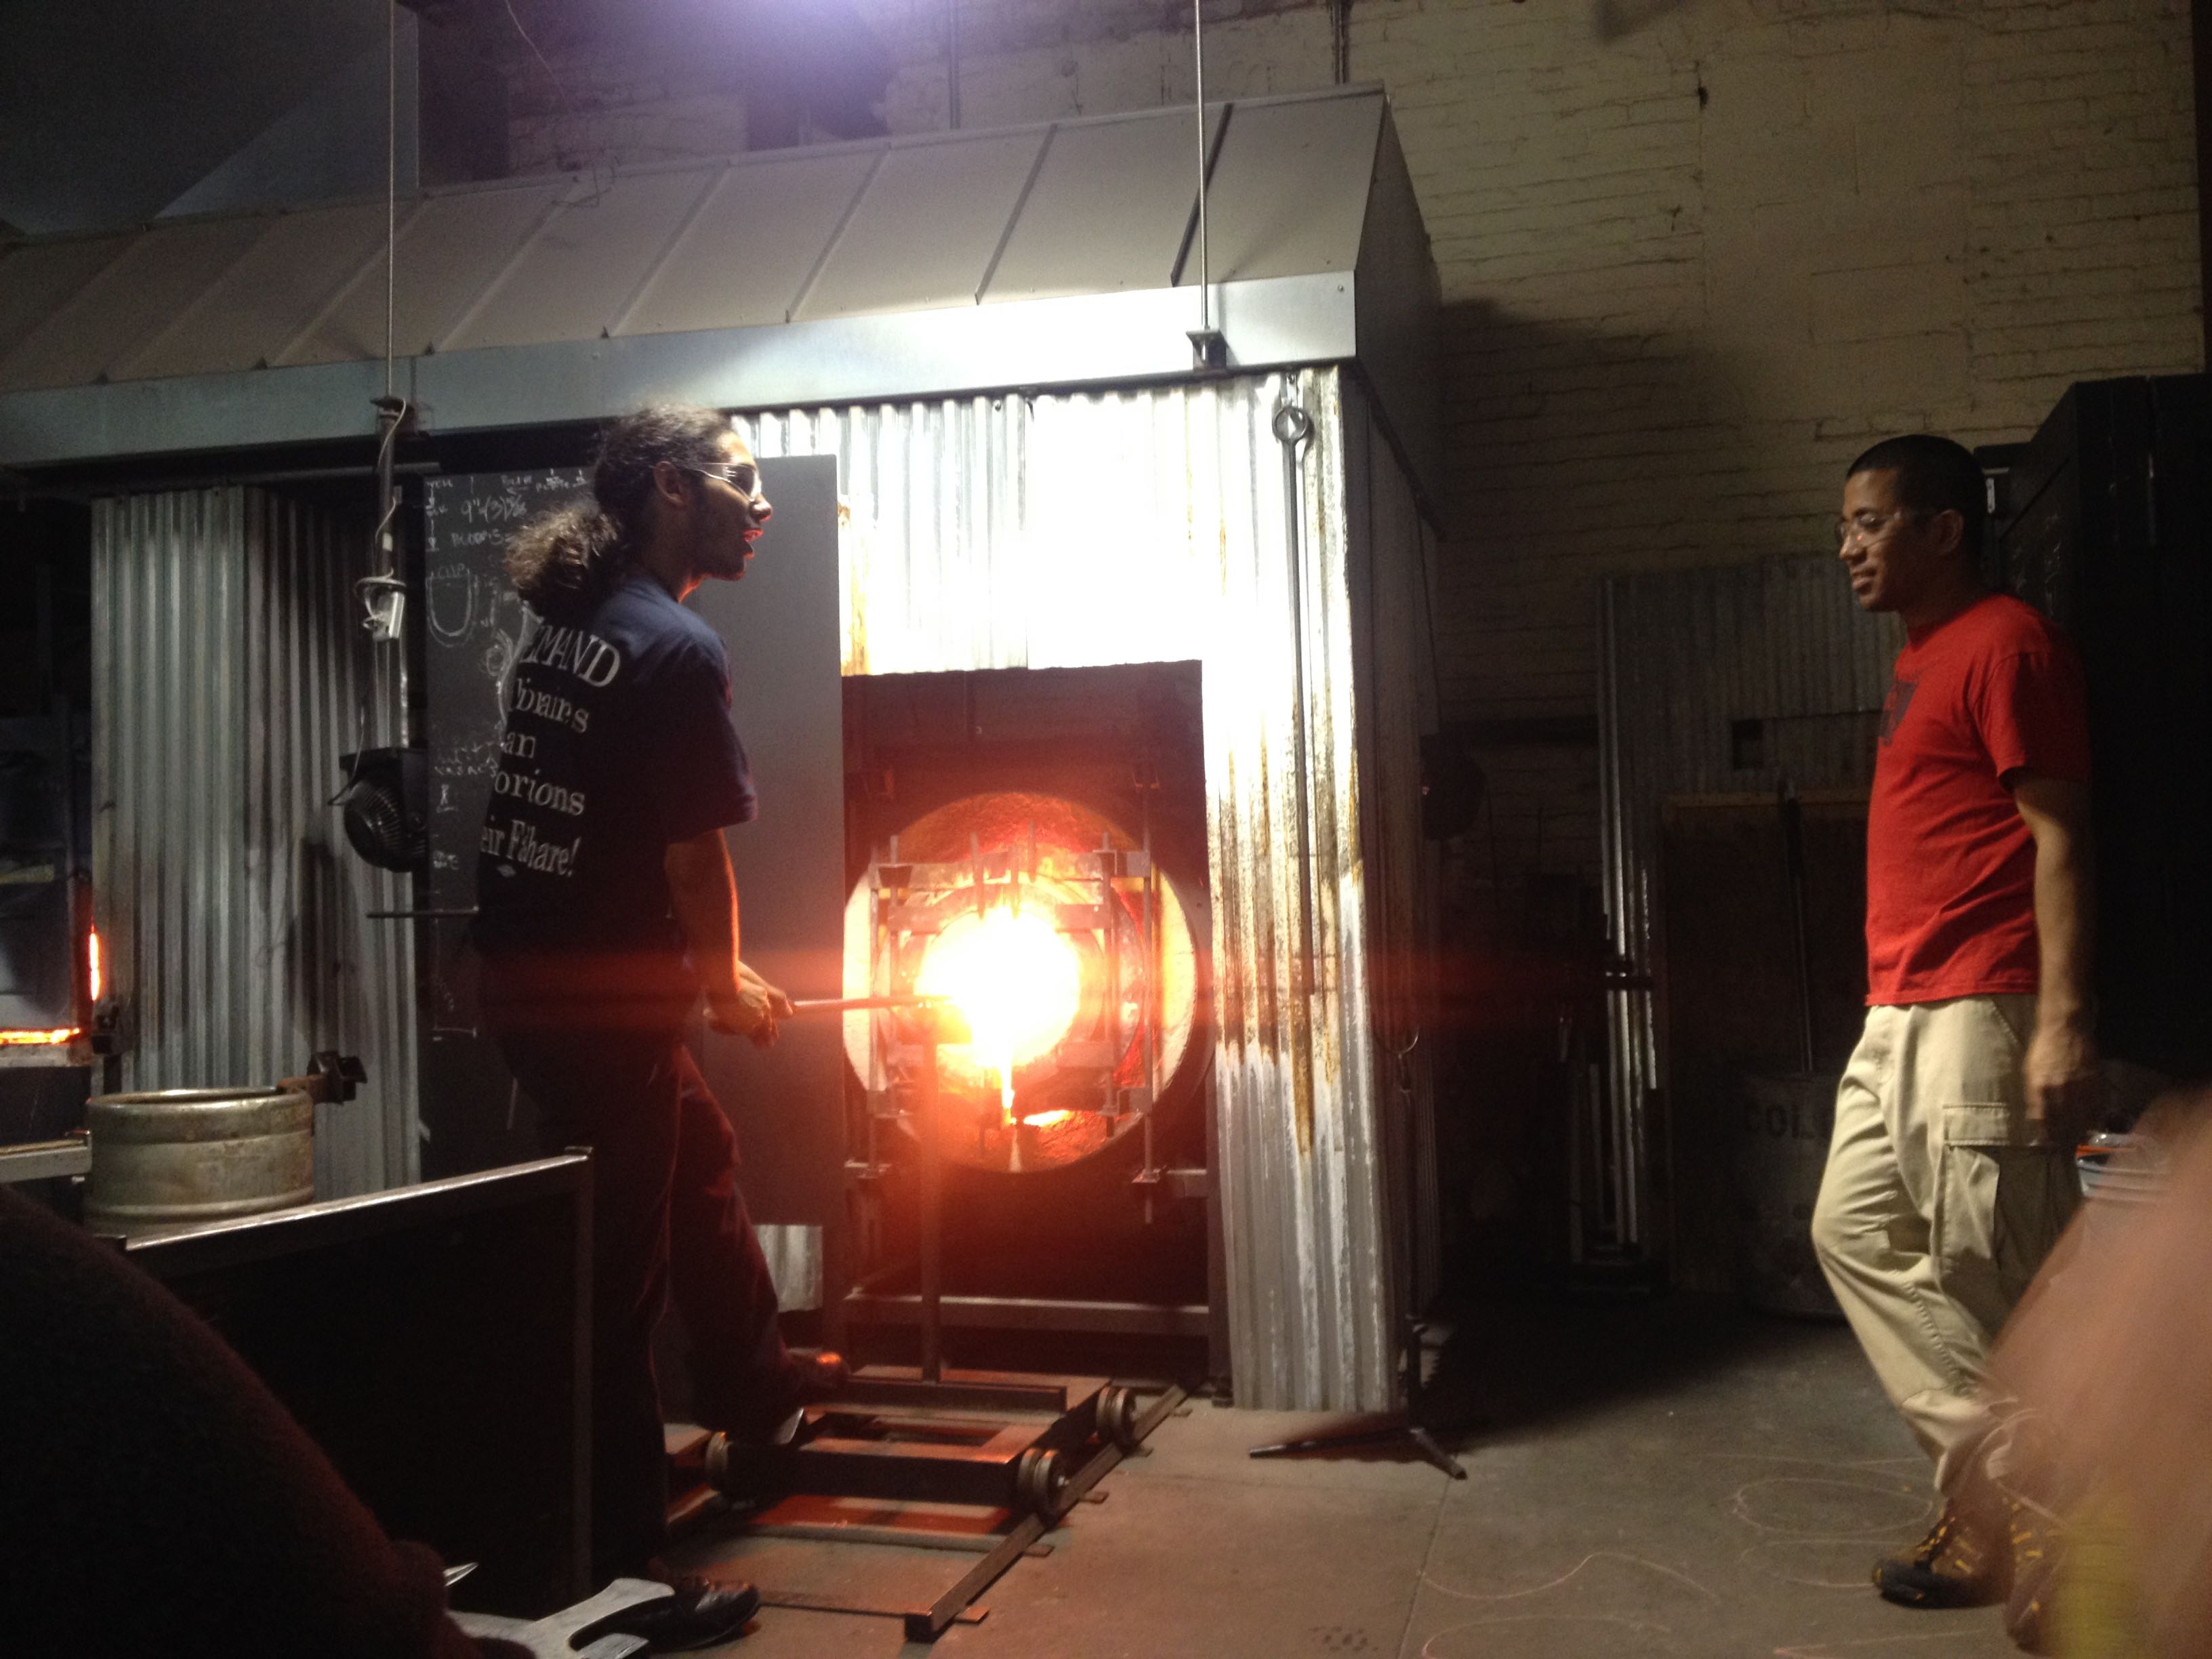 Newark glass blowing studio glassroots combines art and entrepreneurship for students